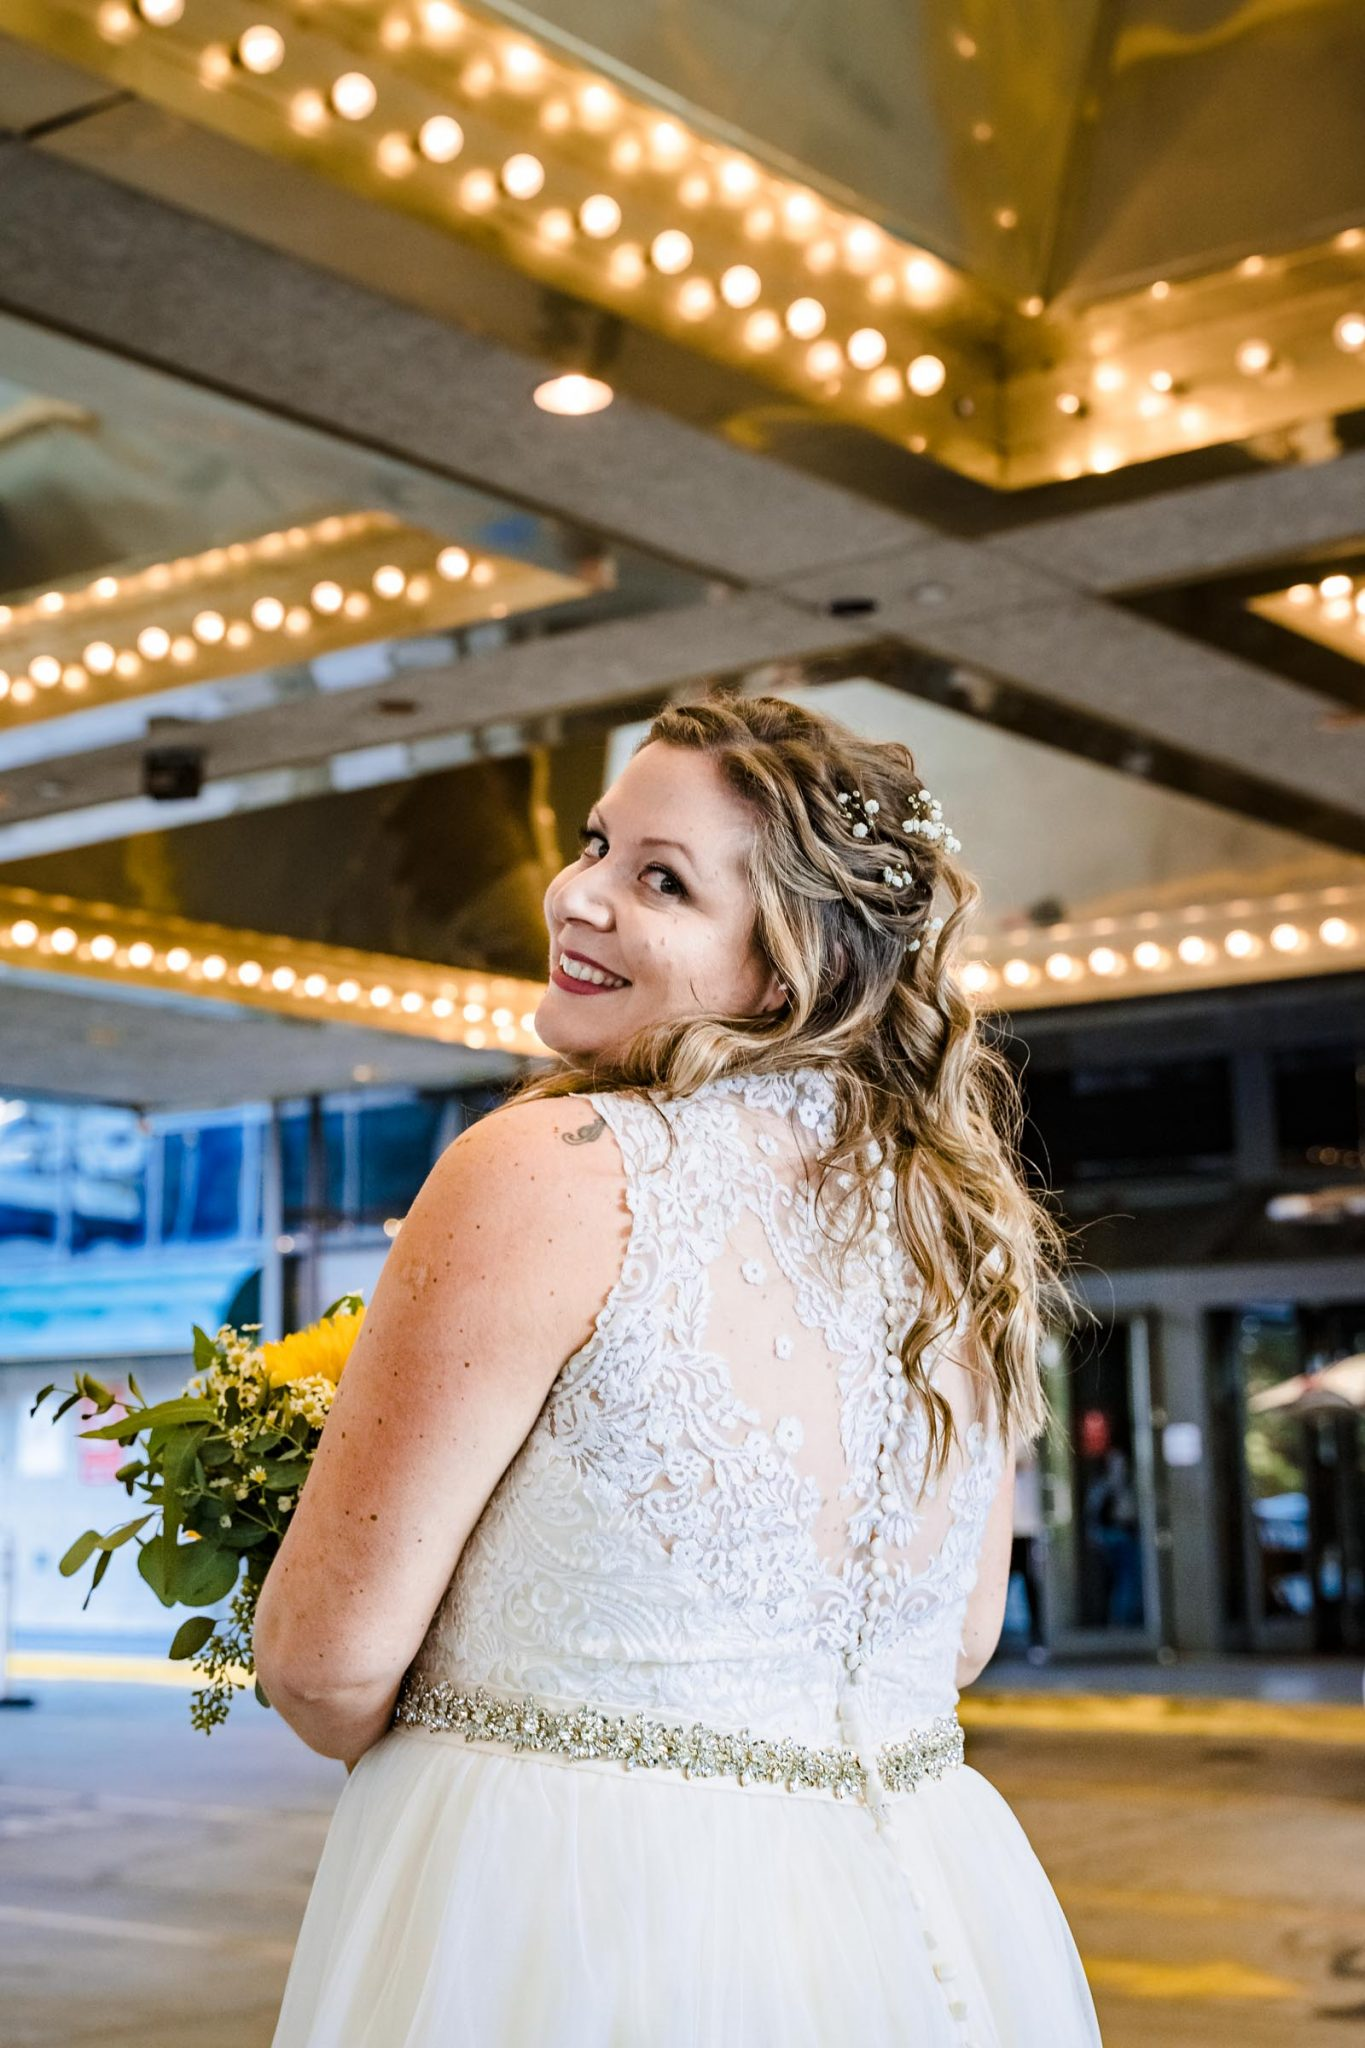 Bride getting ready at Harveys Harrahs wedding in South Lake Tahoe